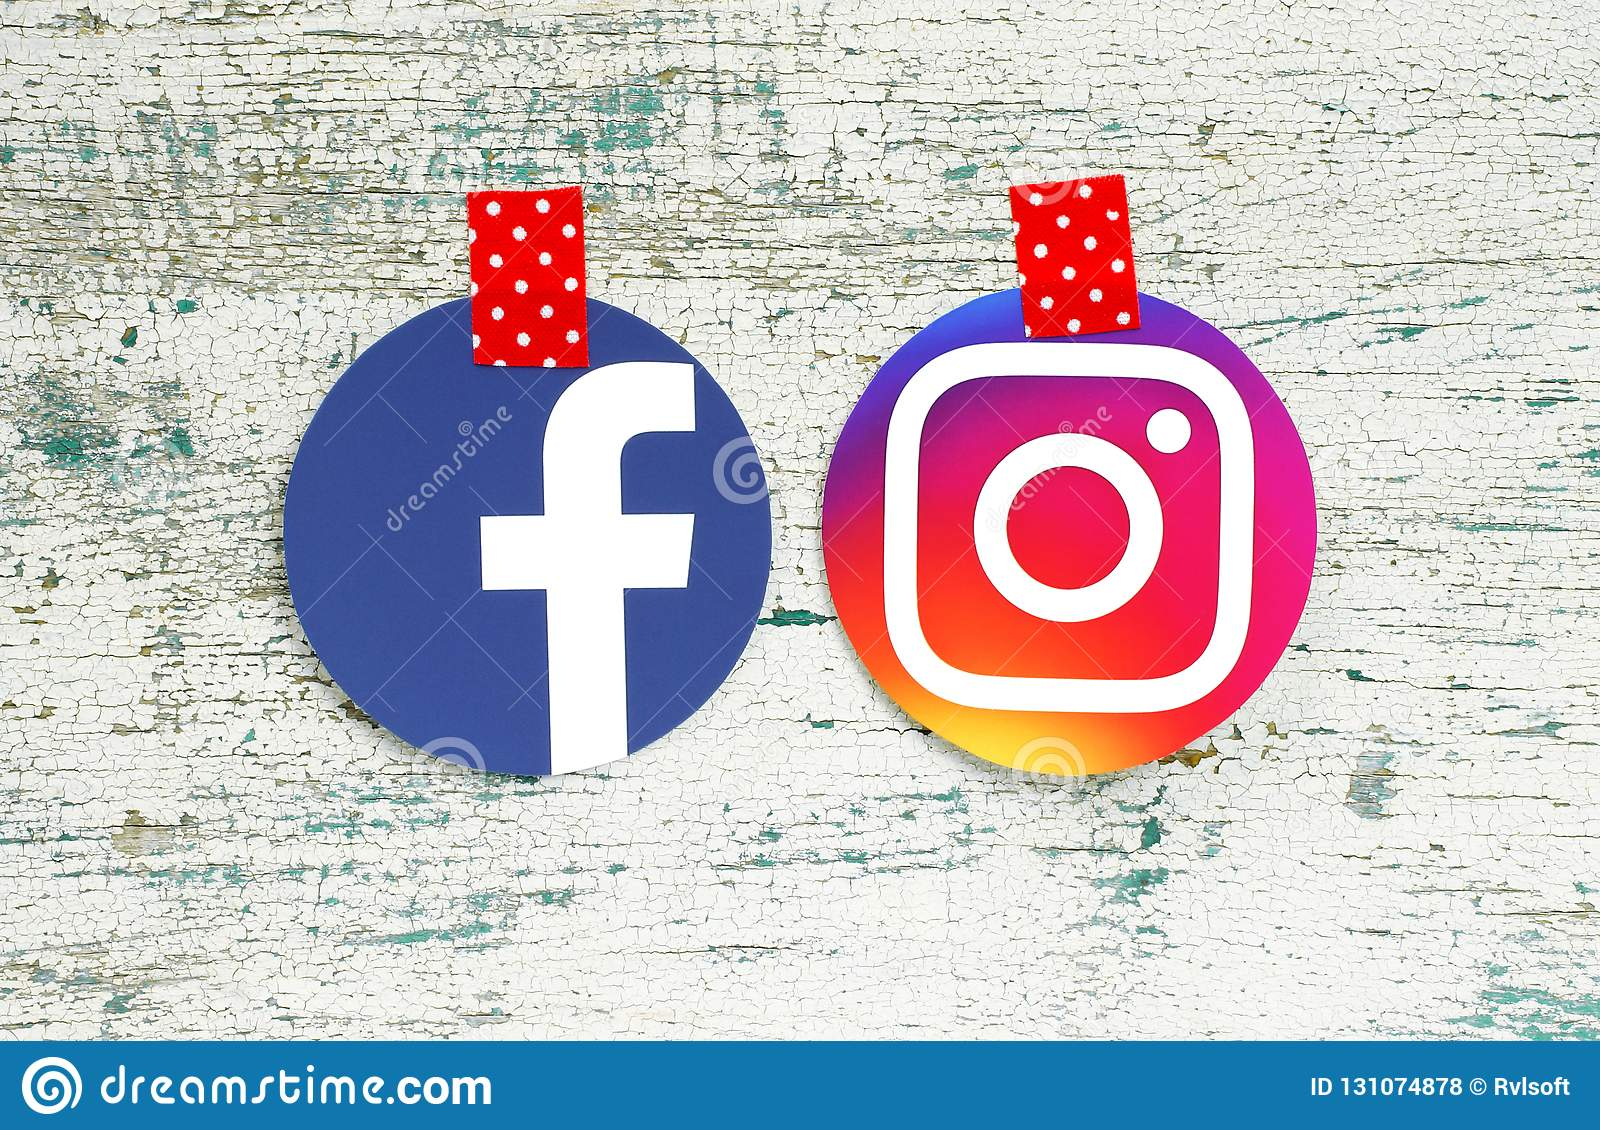 Facebook And Instagram Round Icons Taped With Red In White Dots